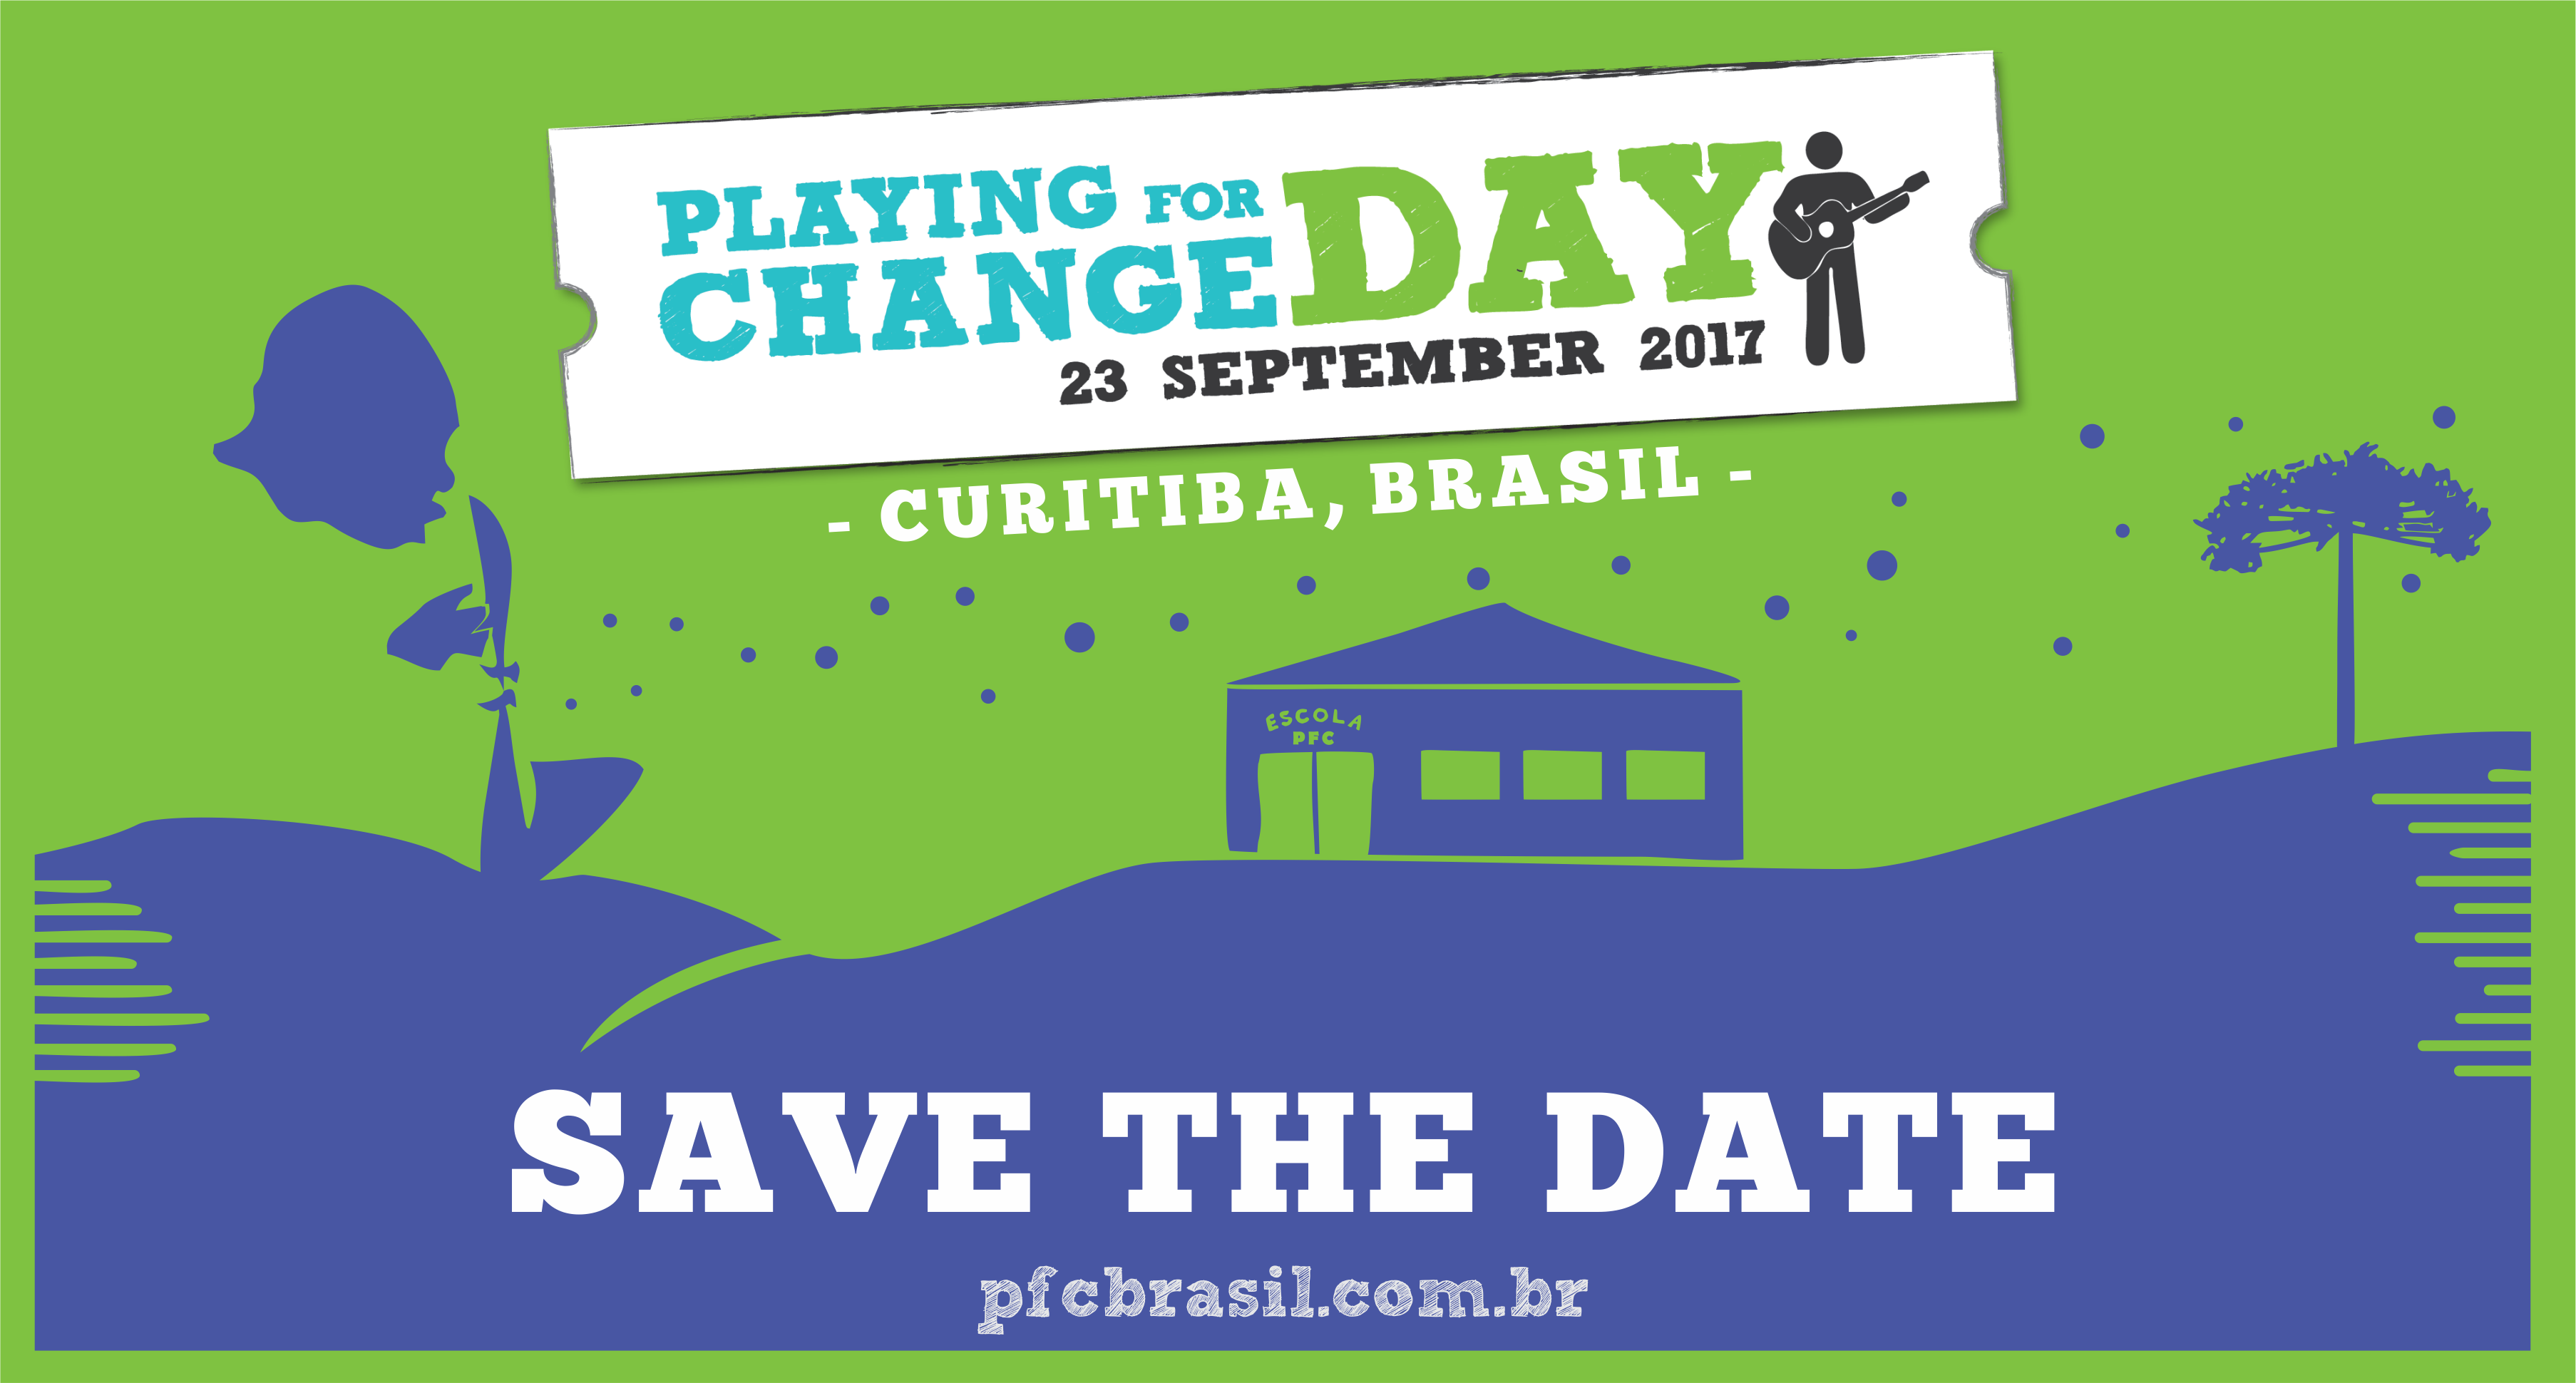 About - Playing For Change Day |Playing Change Day